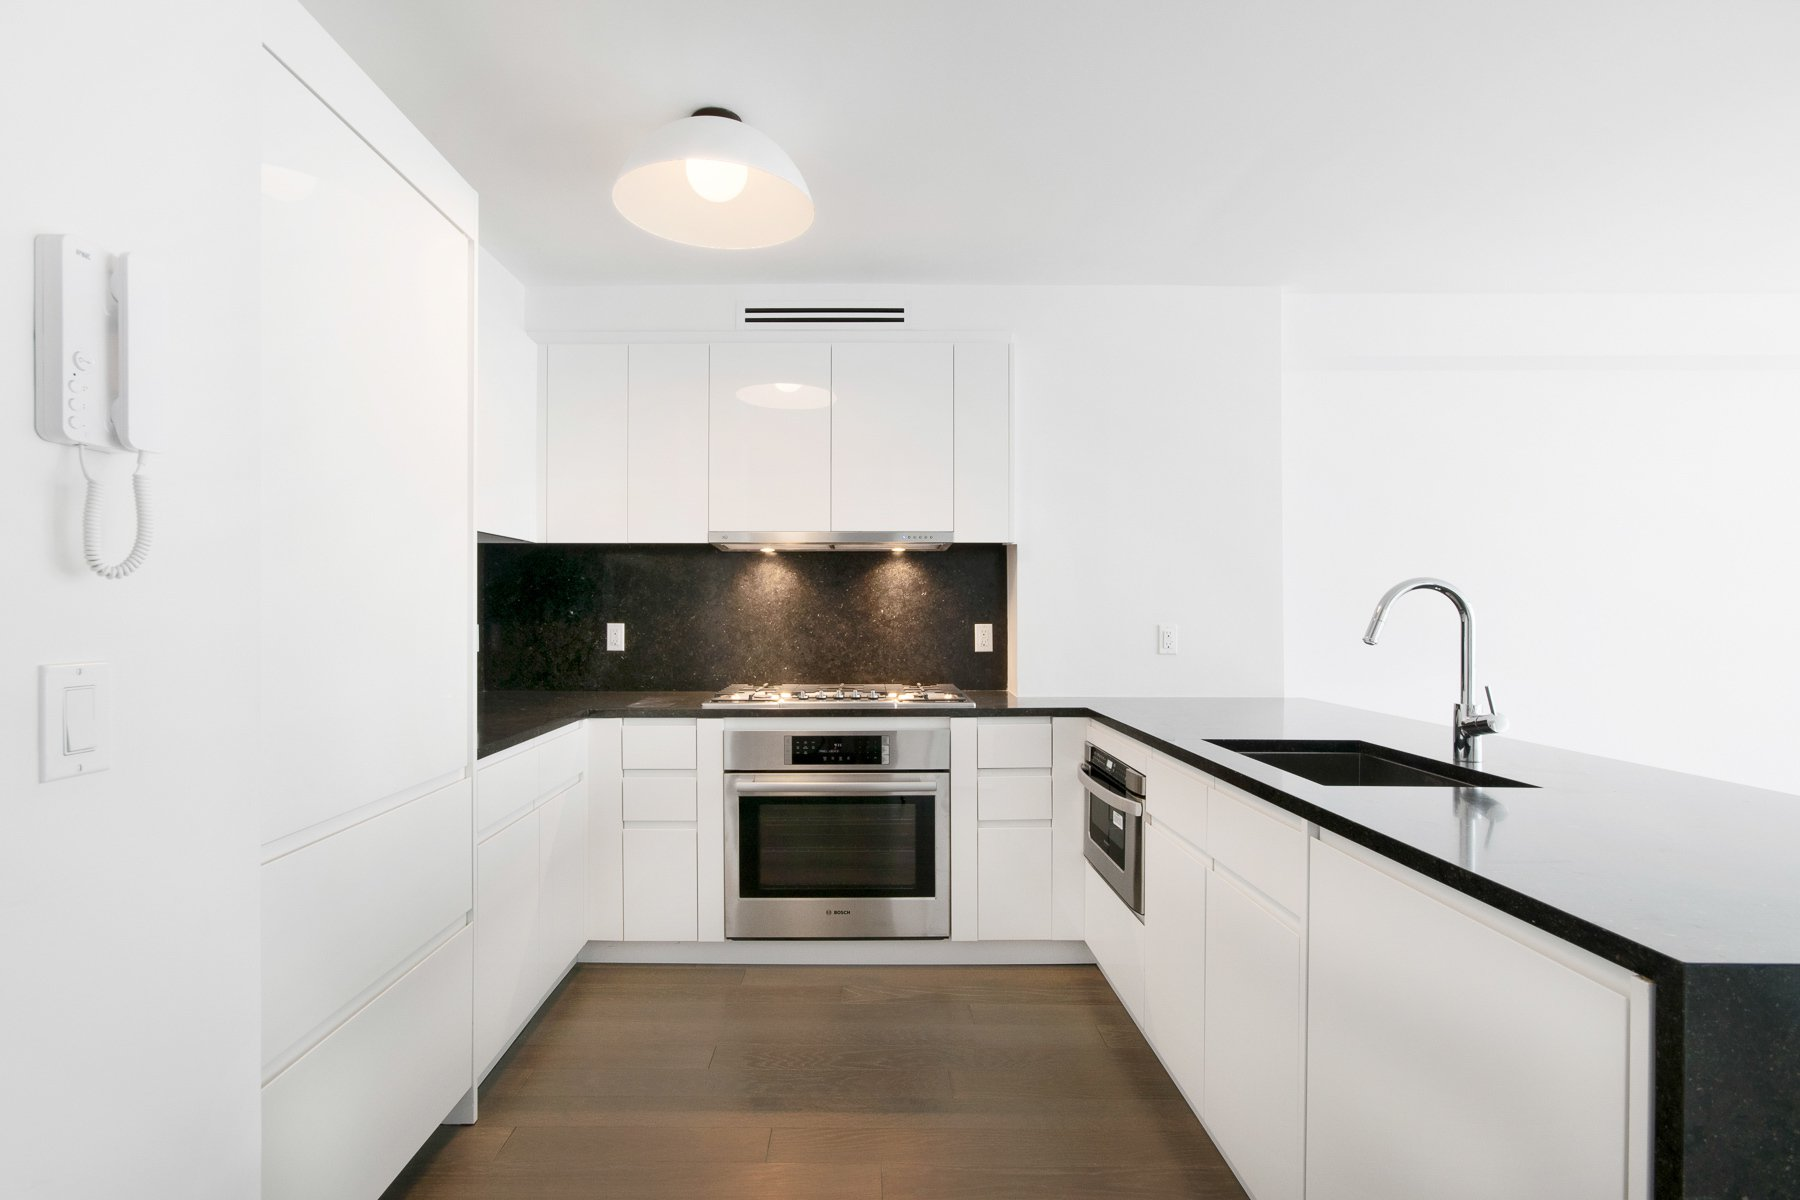 Coda, 385 1ST AVE | Apartments for Sale & Rent in Gramercy